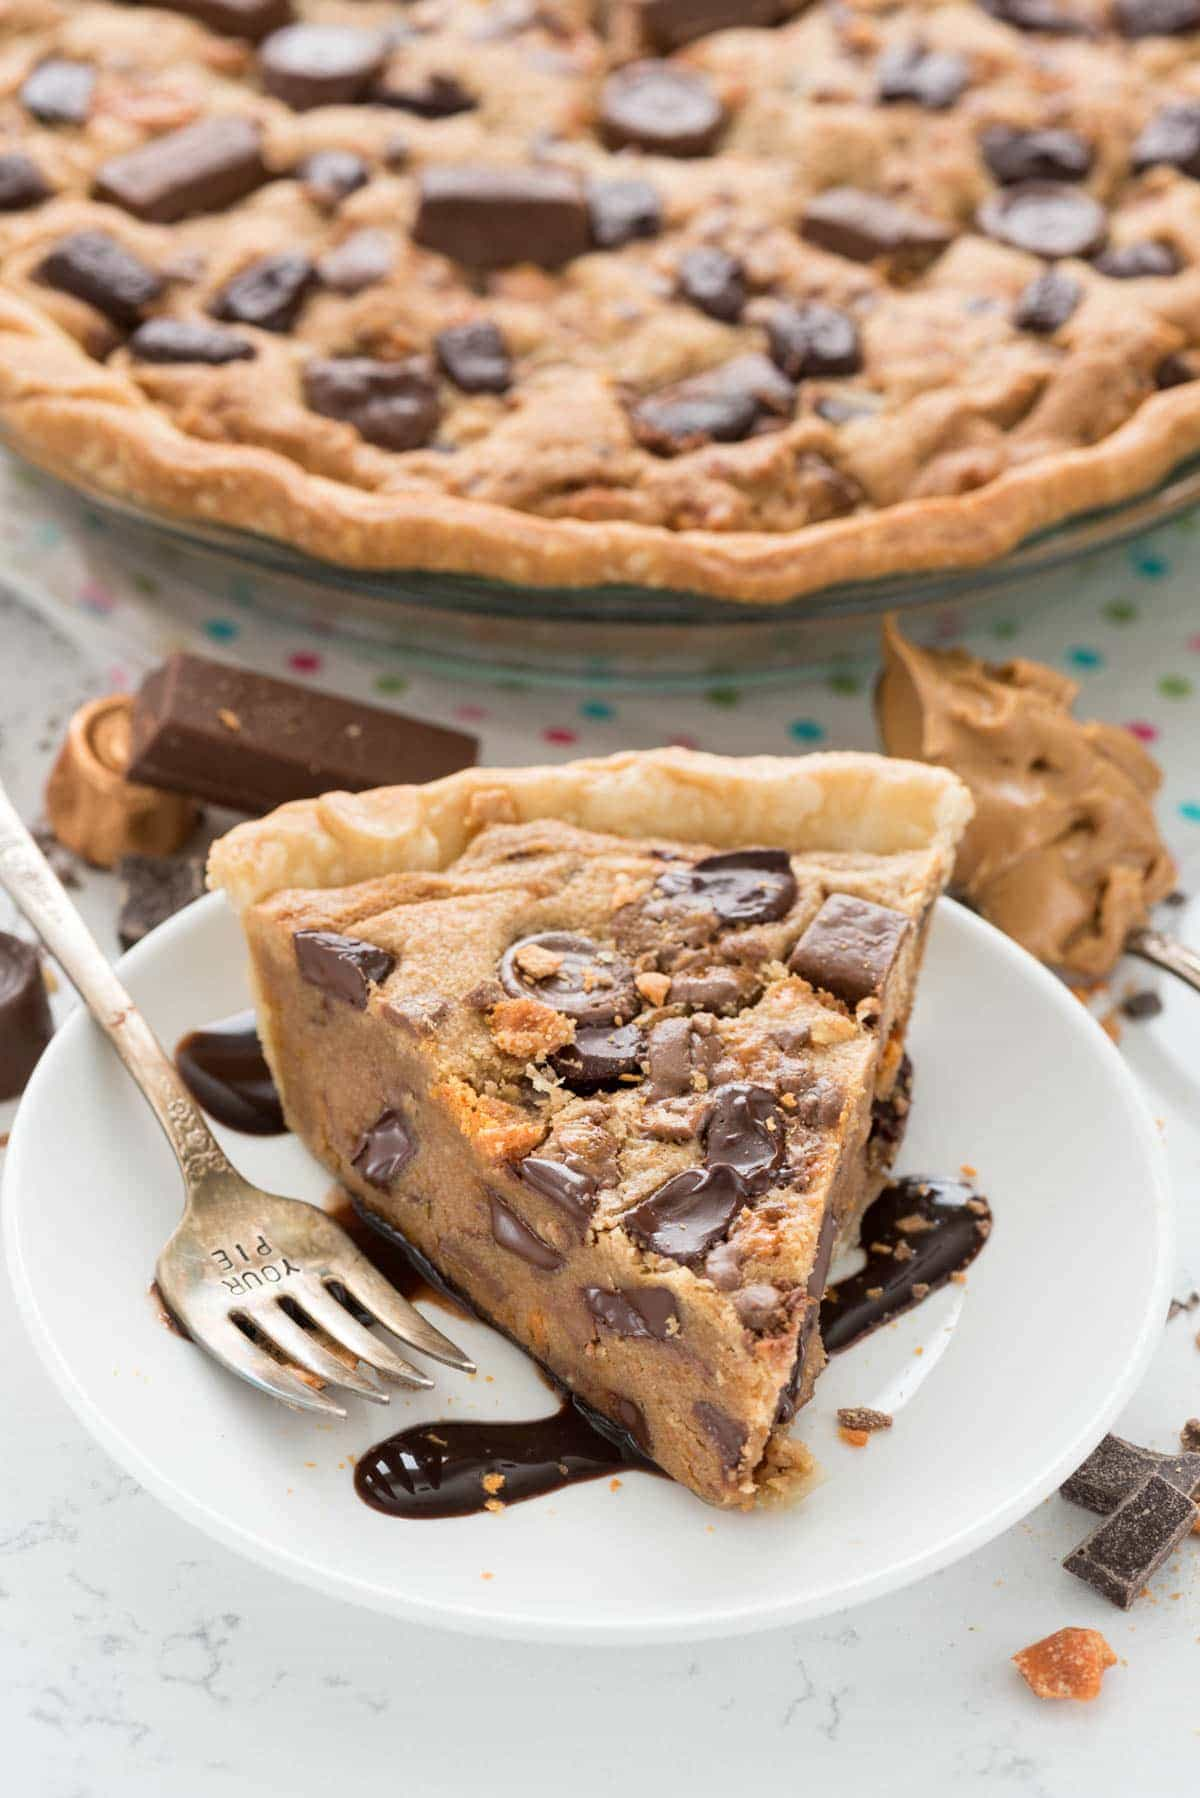 Peanut Butter Candy Bar Pie Recipe